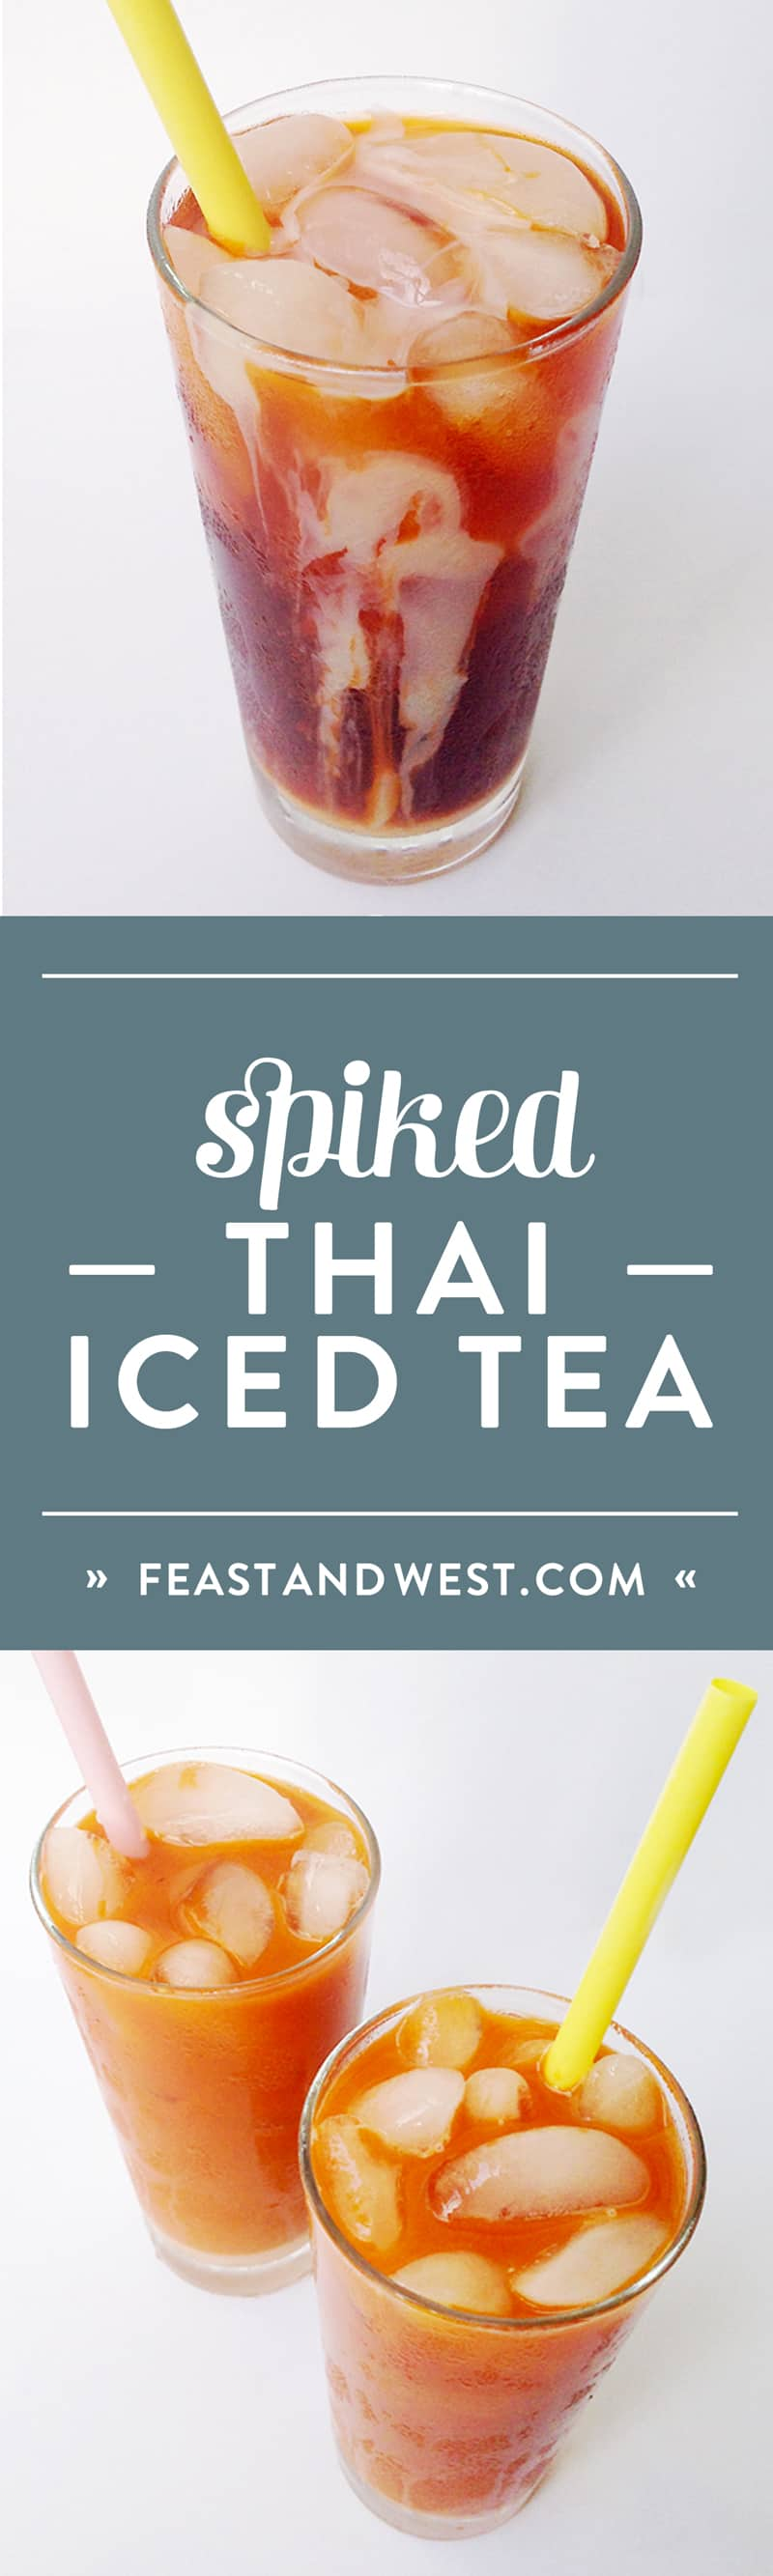 Cool off with an ice-cold Spiked Thai Iced Tea. With a hint of vanilla and a spot of rum or vodka, this sweet, silky beverage is a refreshing indulgence reminiscent of my favorite Thai restaurant treat. (via feastandwest.com)